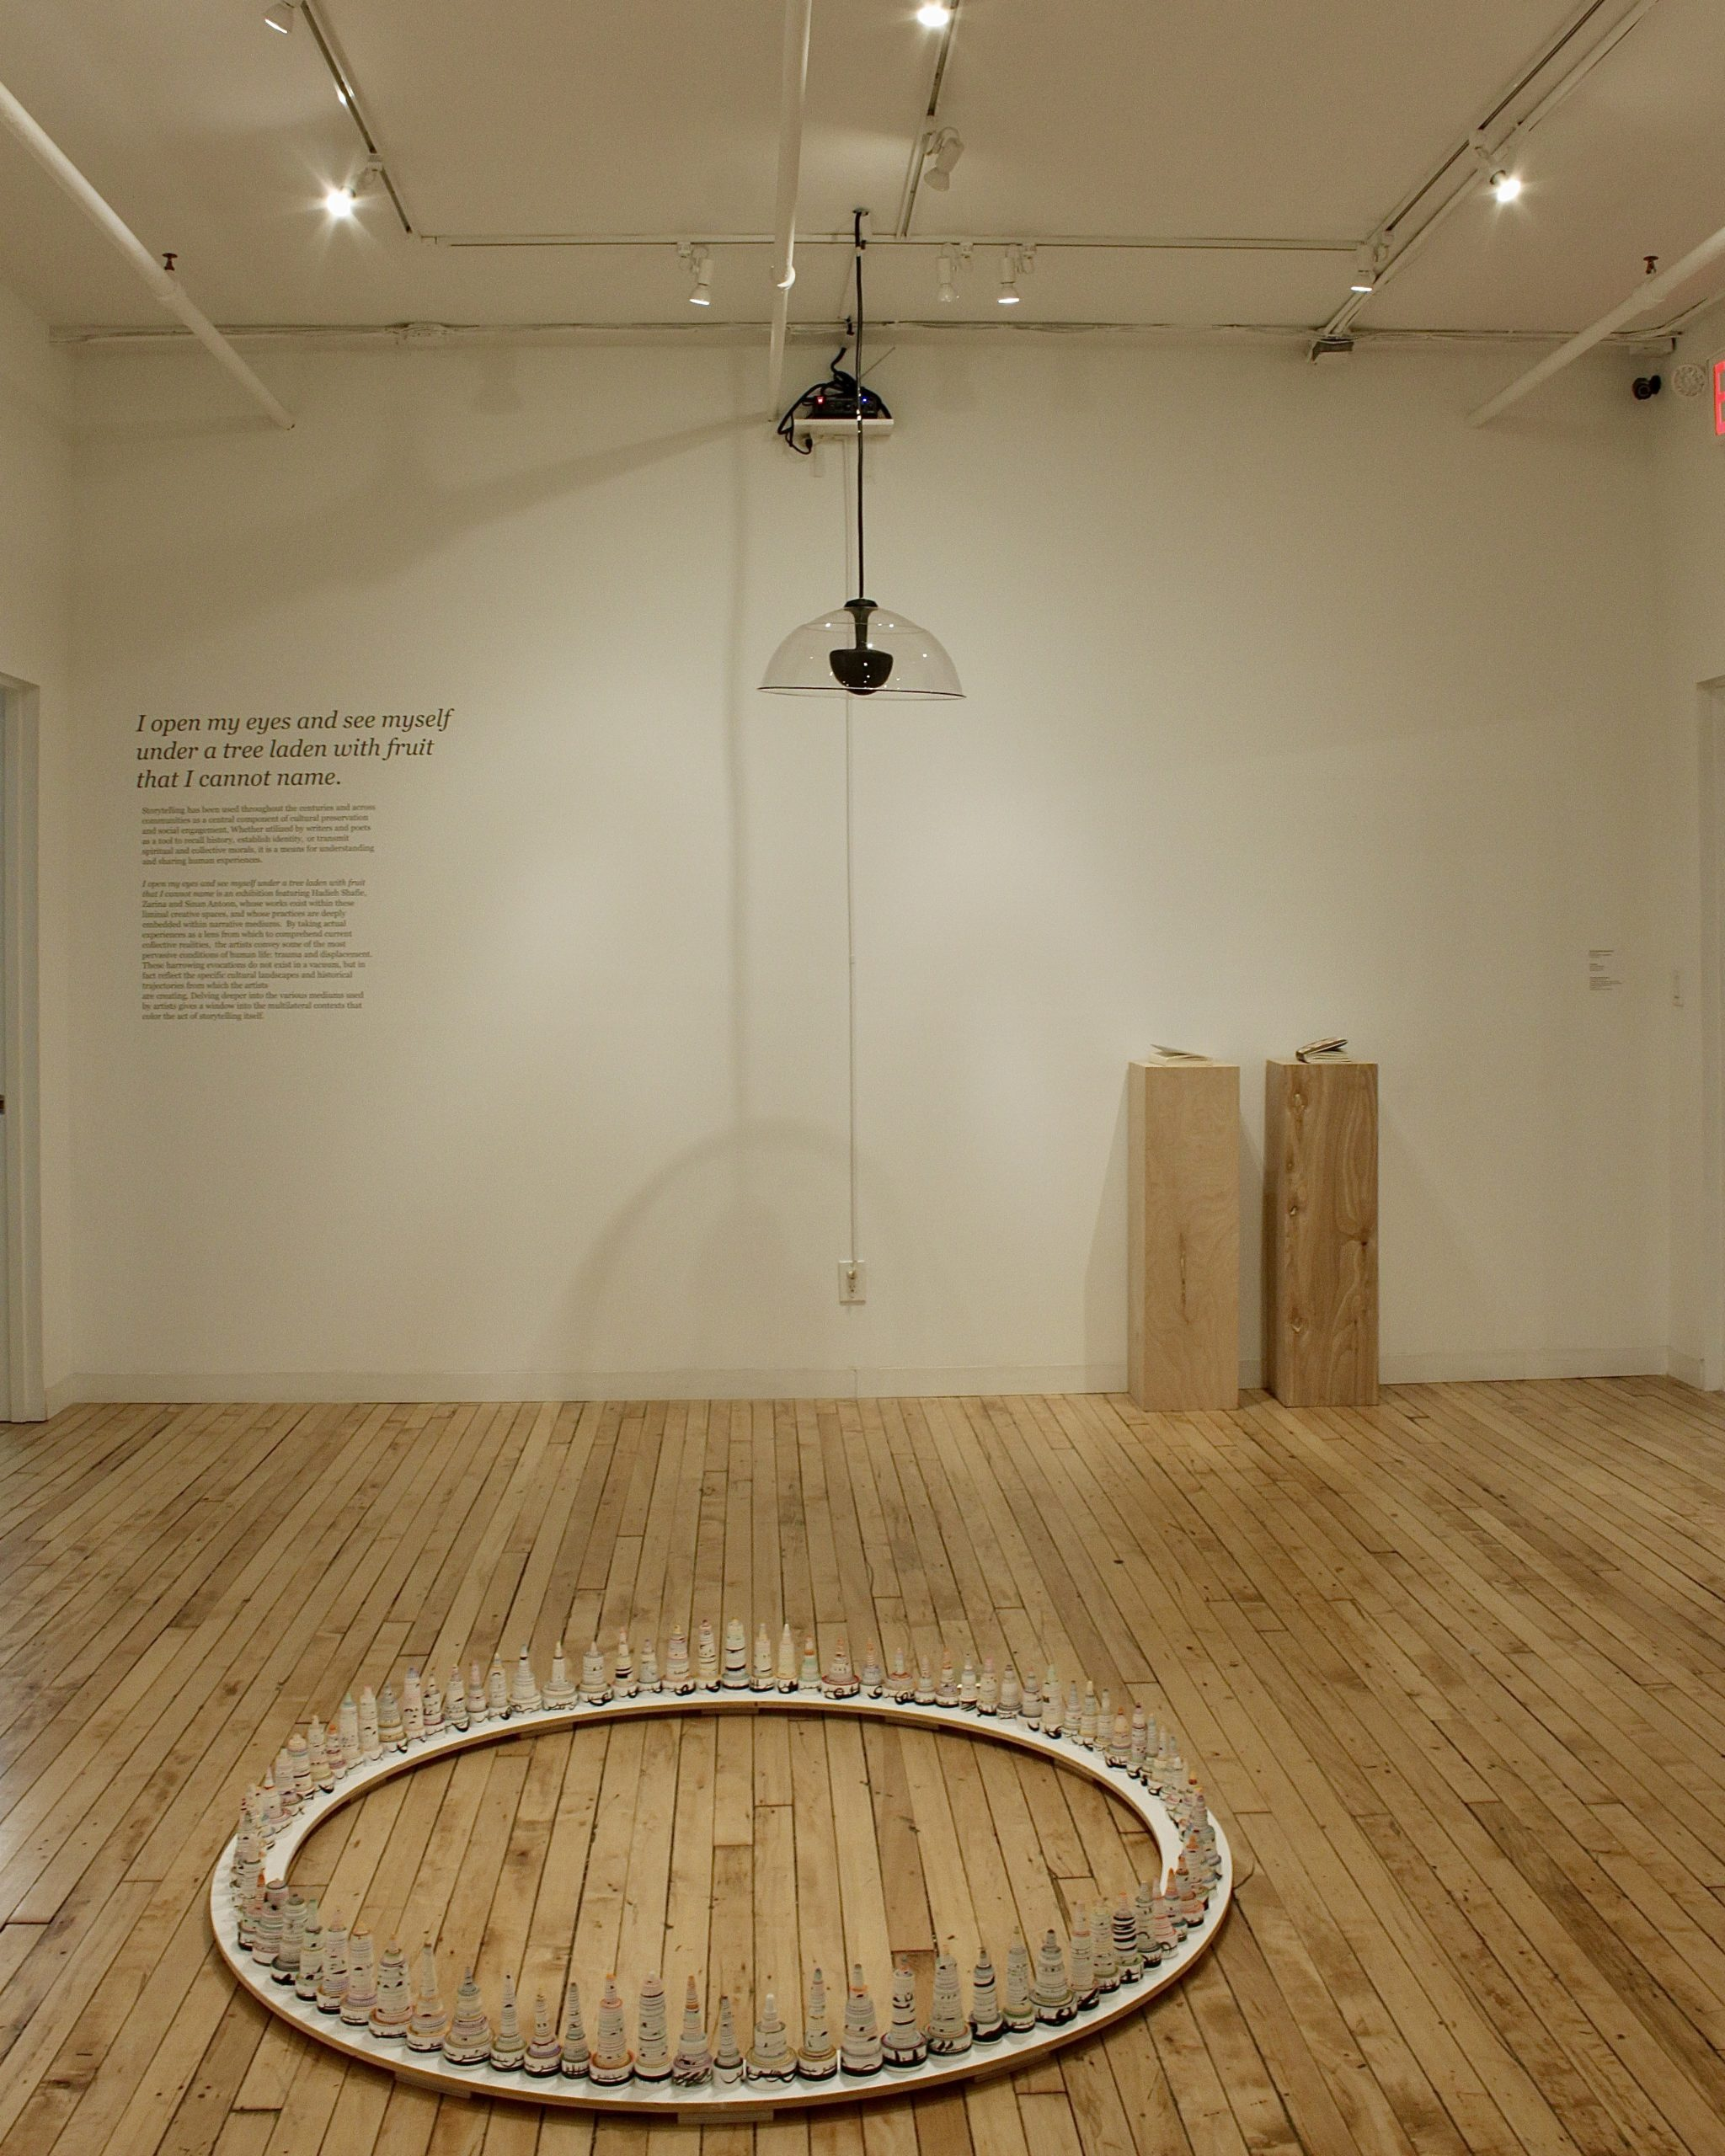 Installation view of works by Hadieh Shafie and Sinan Antoon